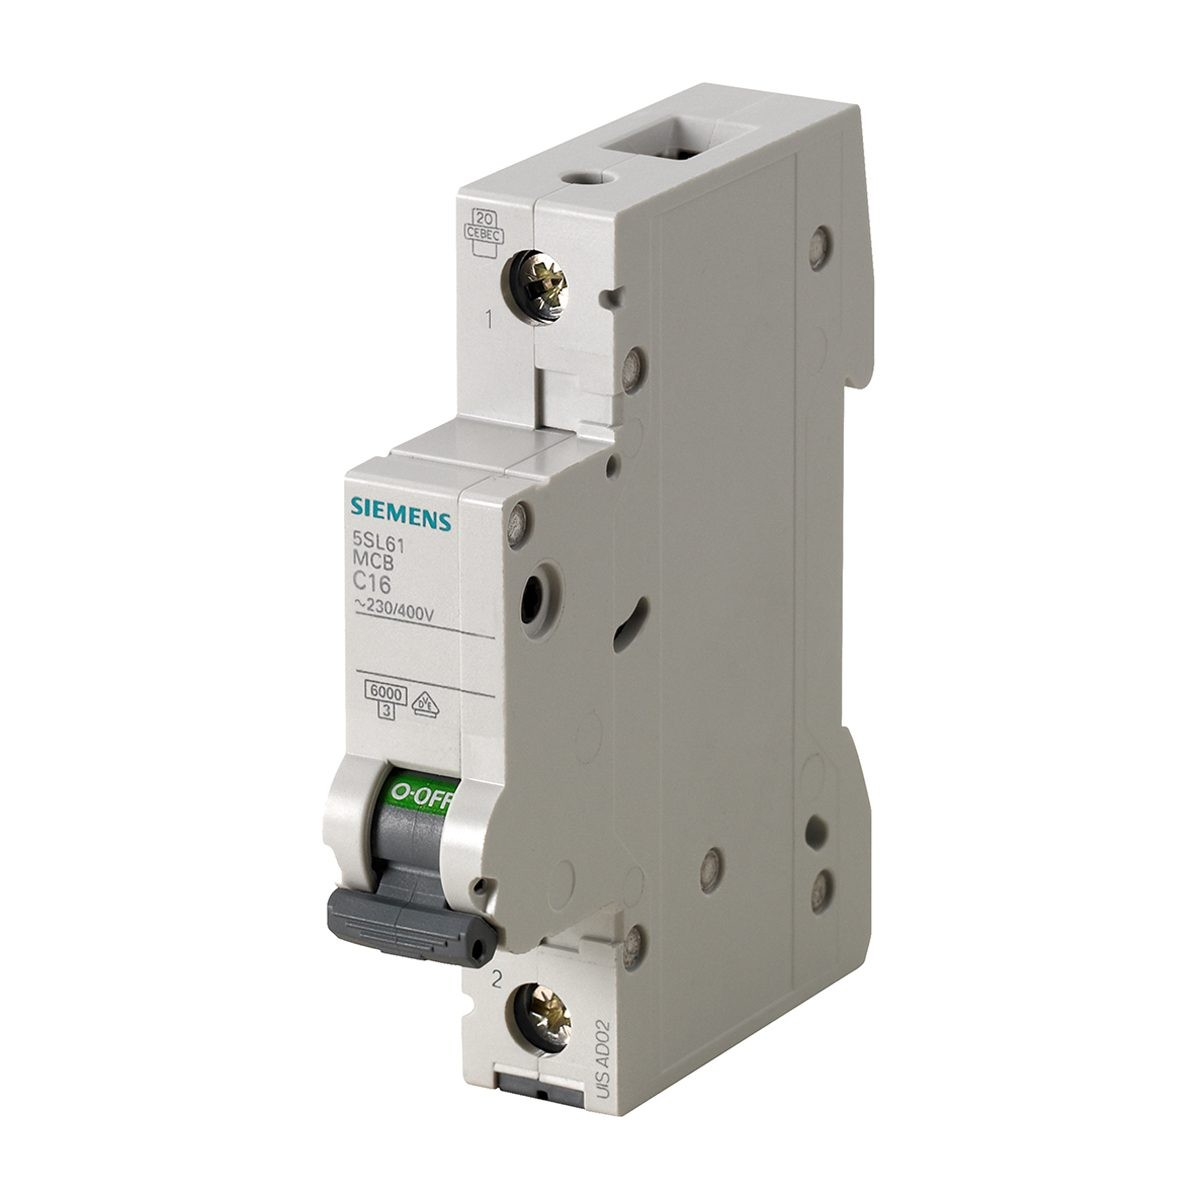 Miniature circuit breakers | SENTRON protection devices ... on 3 phase magnetic contactor, 3 phase current transformer, 3 phase manual transfer switch,